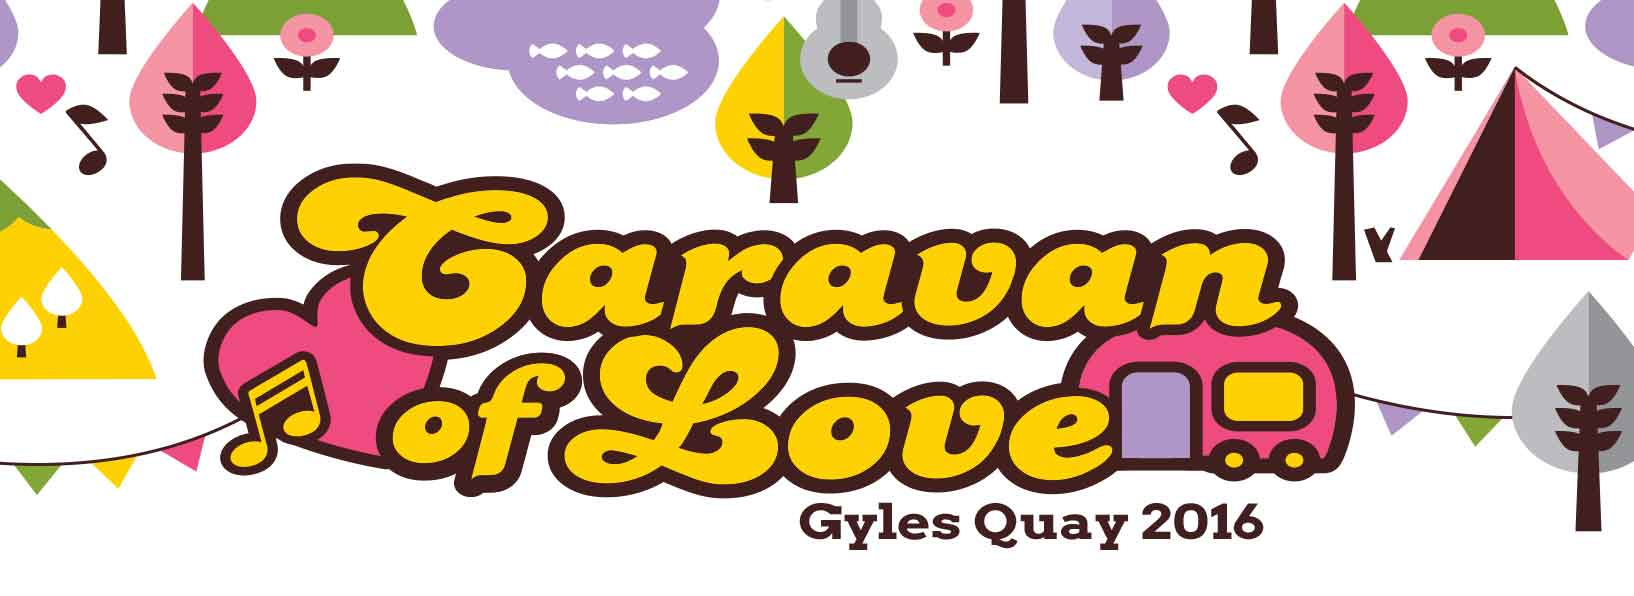 Caravan of Love 2016 - Music Festival - Gyles Quay